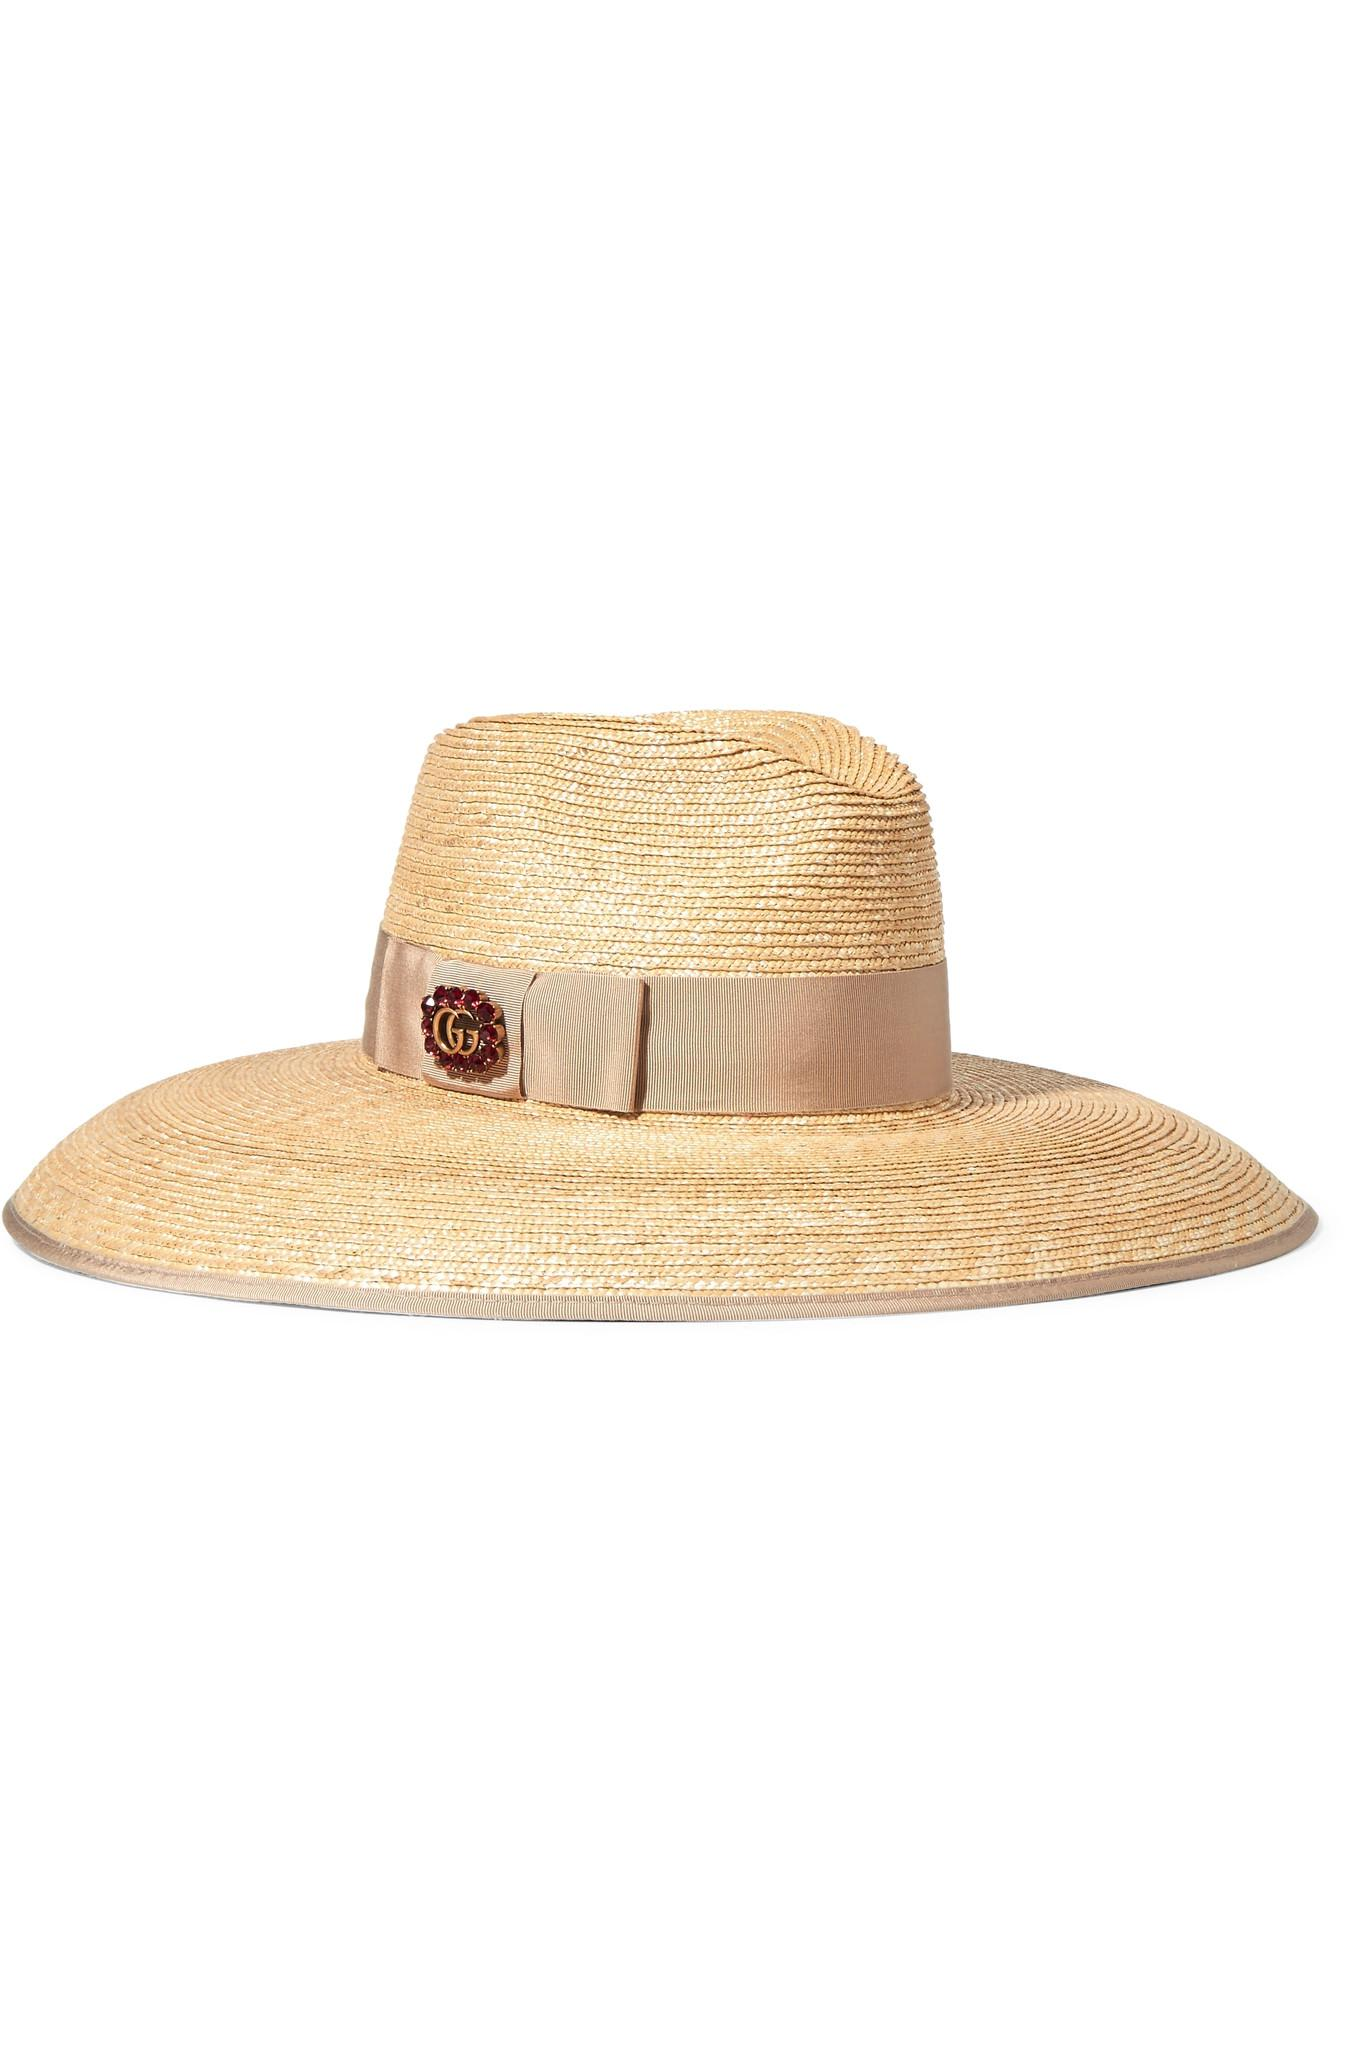 8f4621c1c219a Gucci Embellished Grosgrain-trimmed Straw Hat in Natural - Lyst